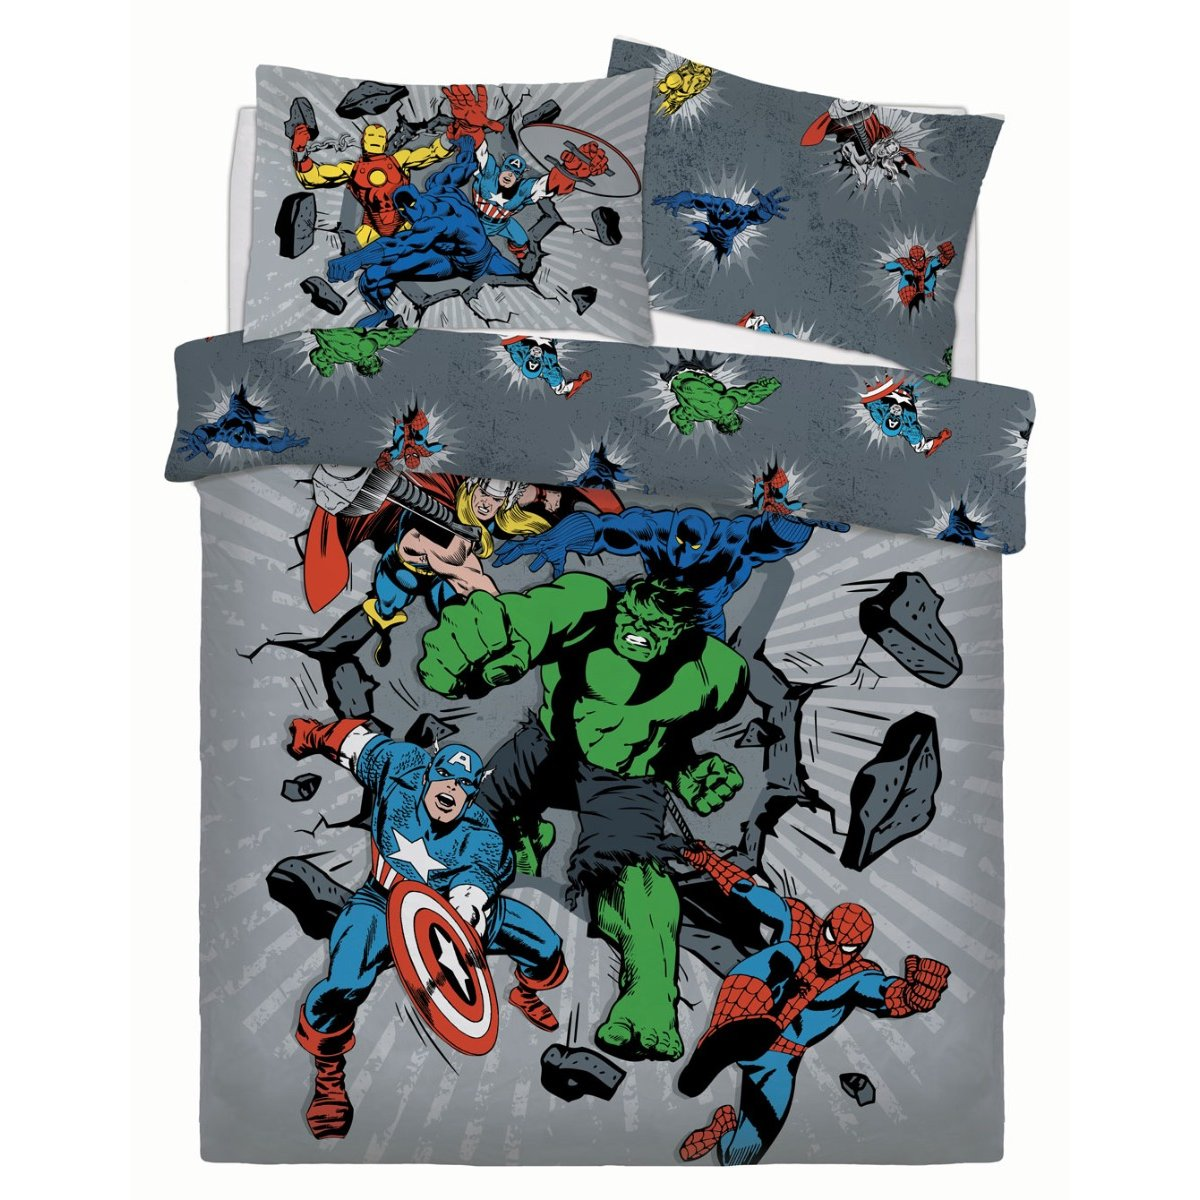 Marvel Break Thru Bedding - Reversible Duvet Cover and Pillowcase Set